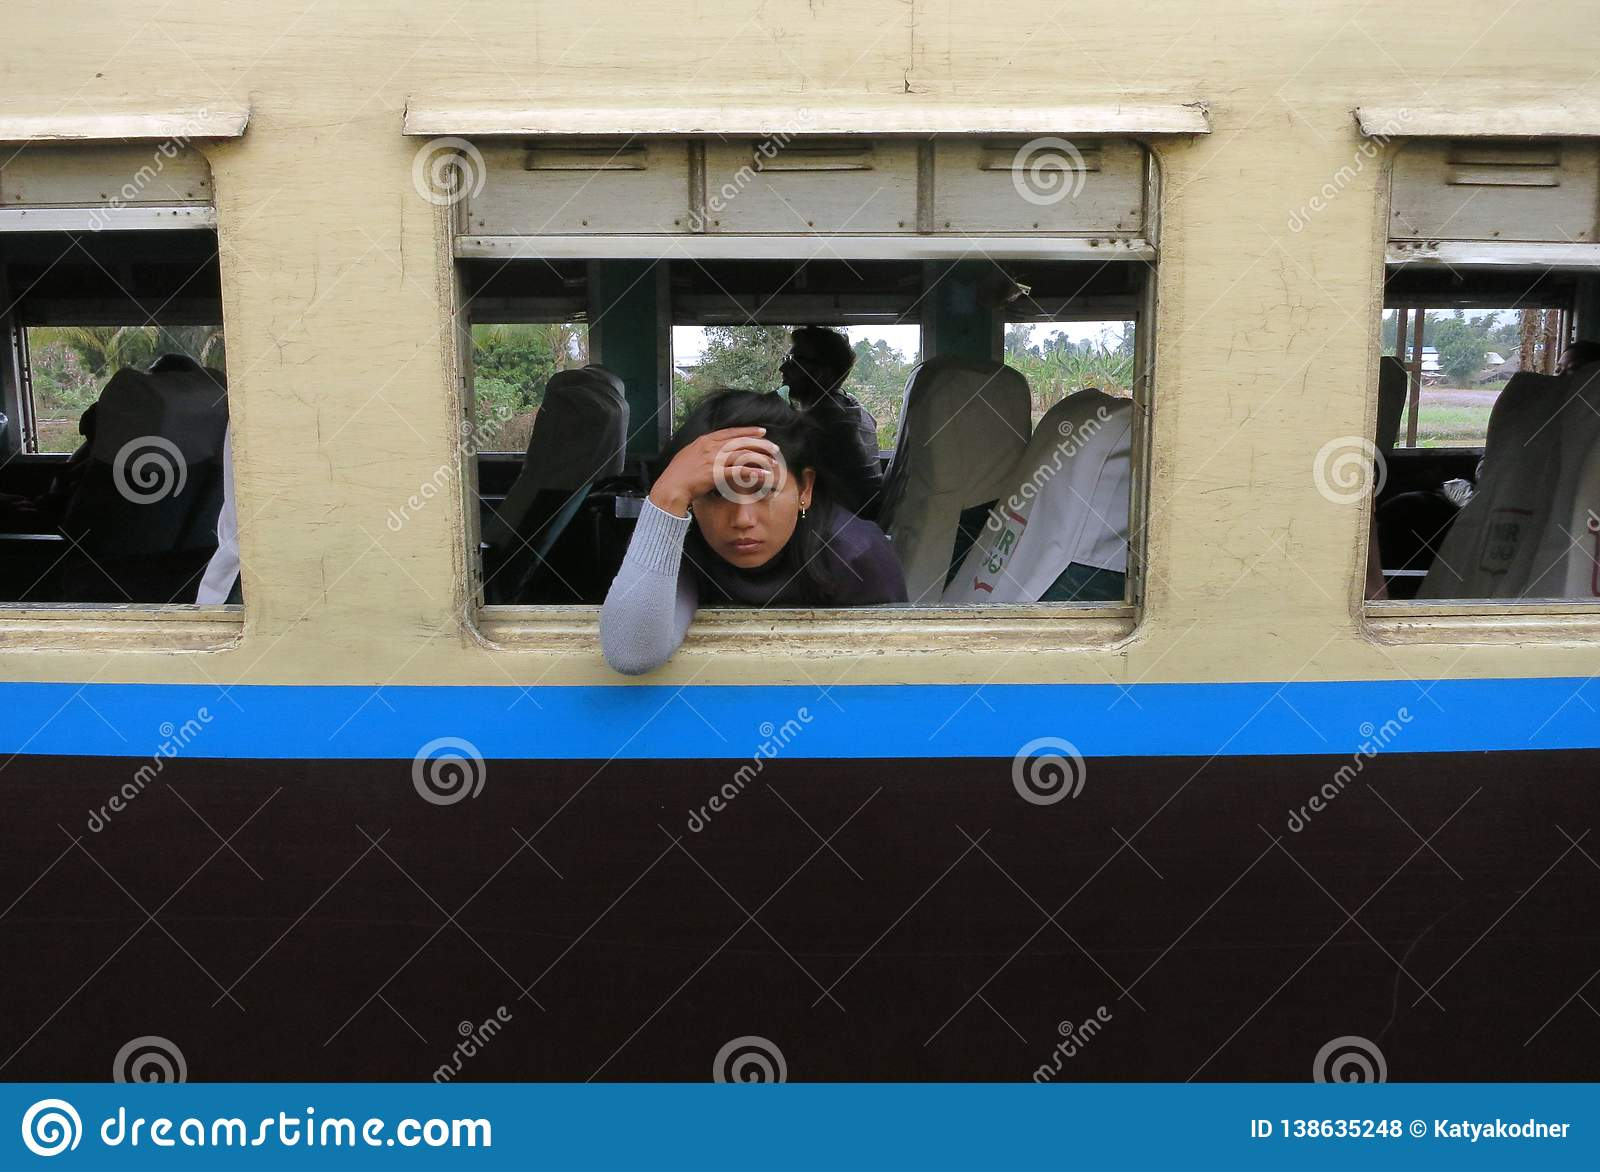 A sad and tired Burmese girl looking out of the window of an old train